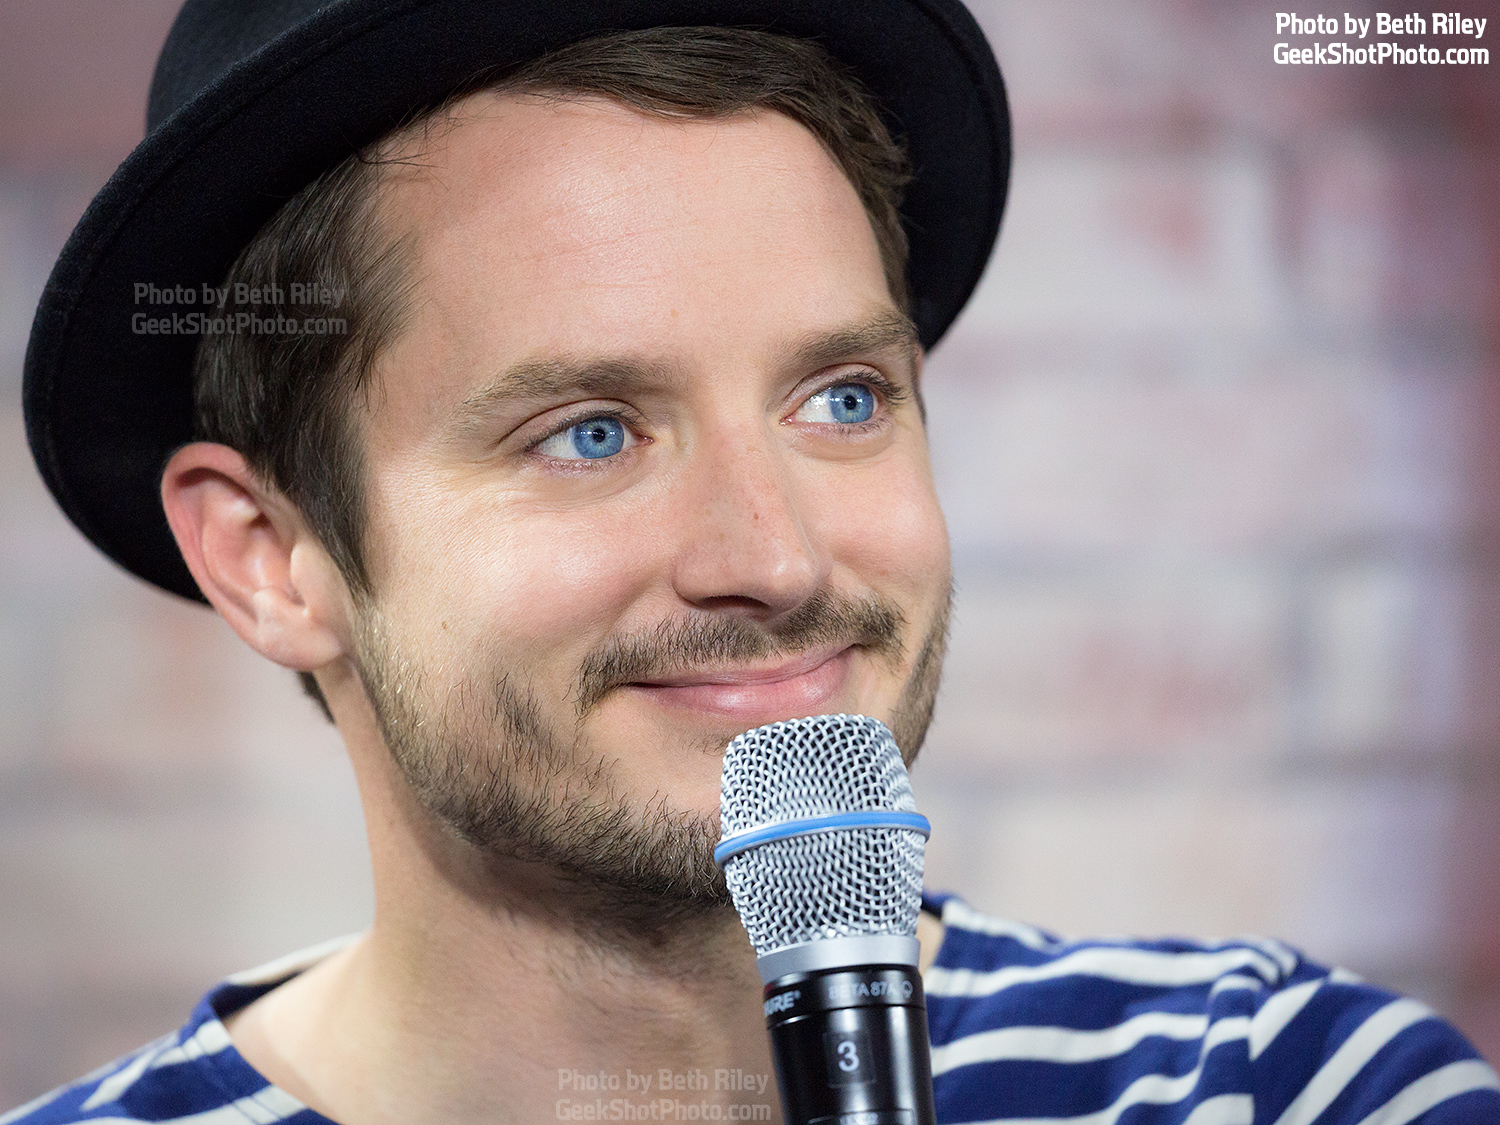 GeekShot Exclusive Photo Series Vol. 3 (Week 21) - Elijah Wood Dirk Gently Nerd HQ 2016